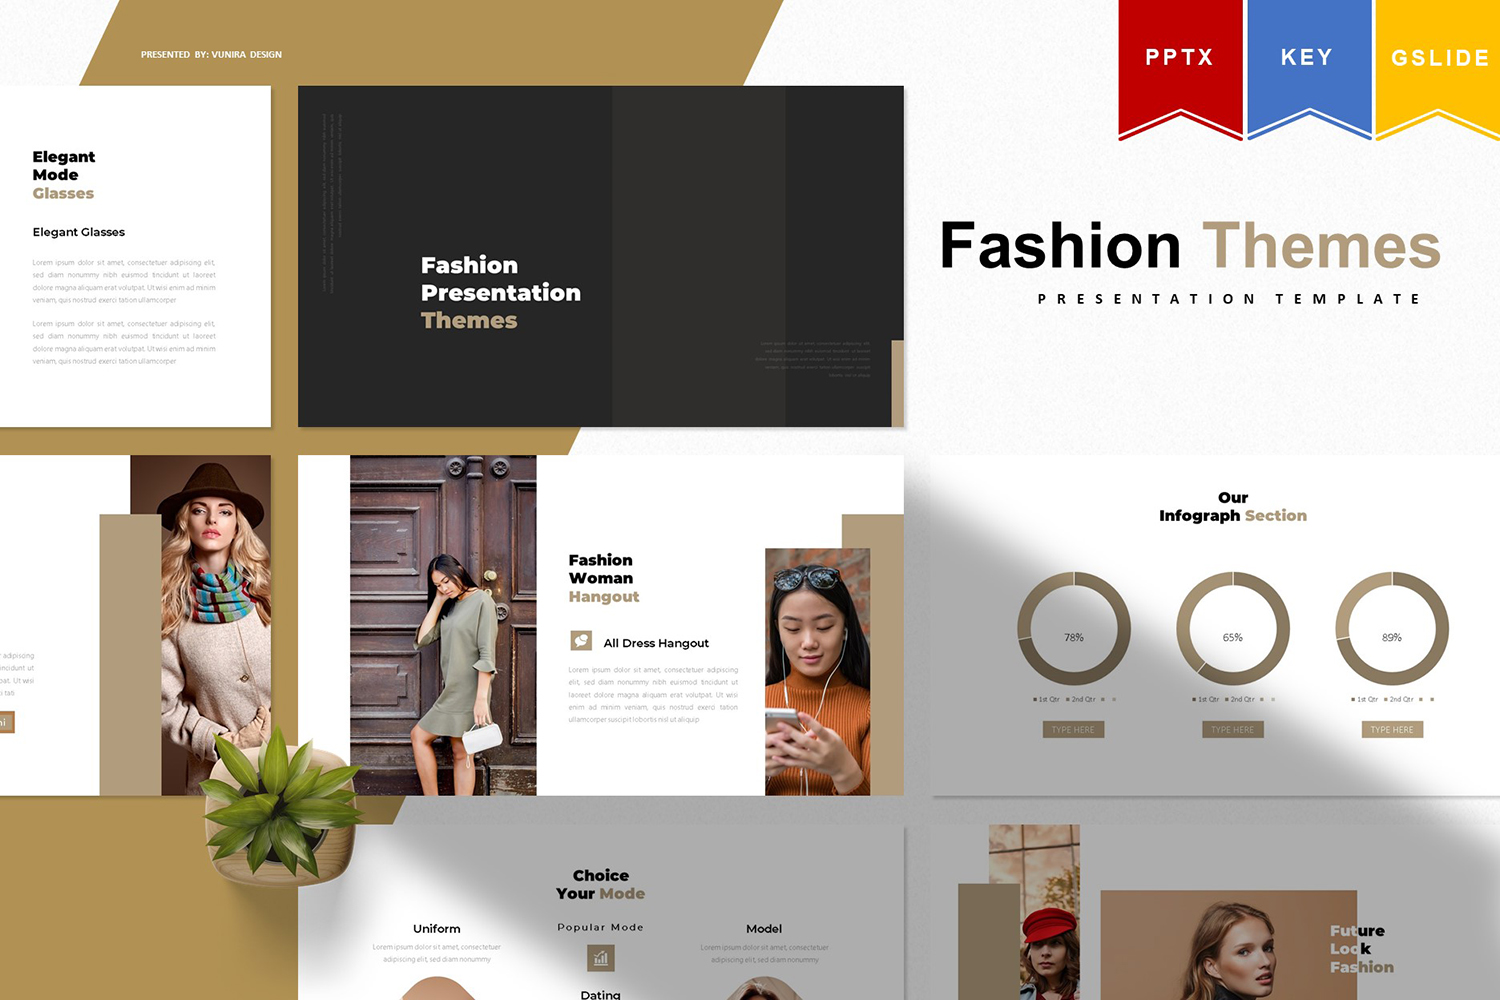 Fashion Themes | PowerPoint Template